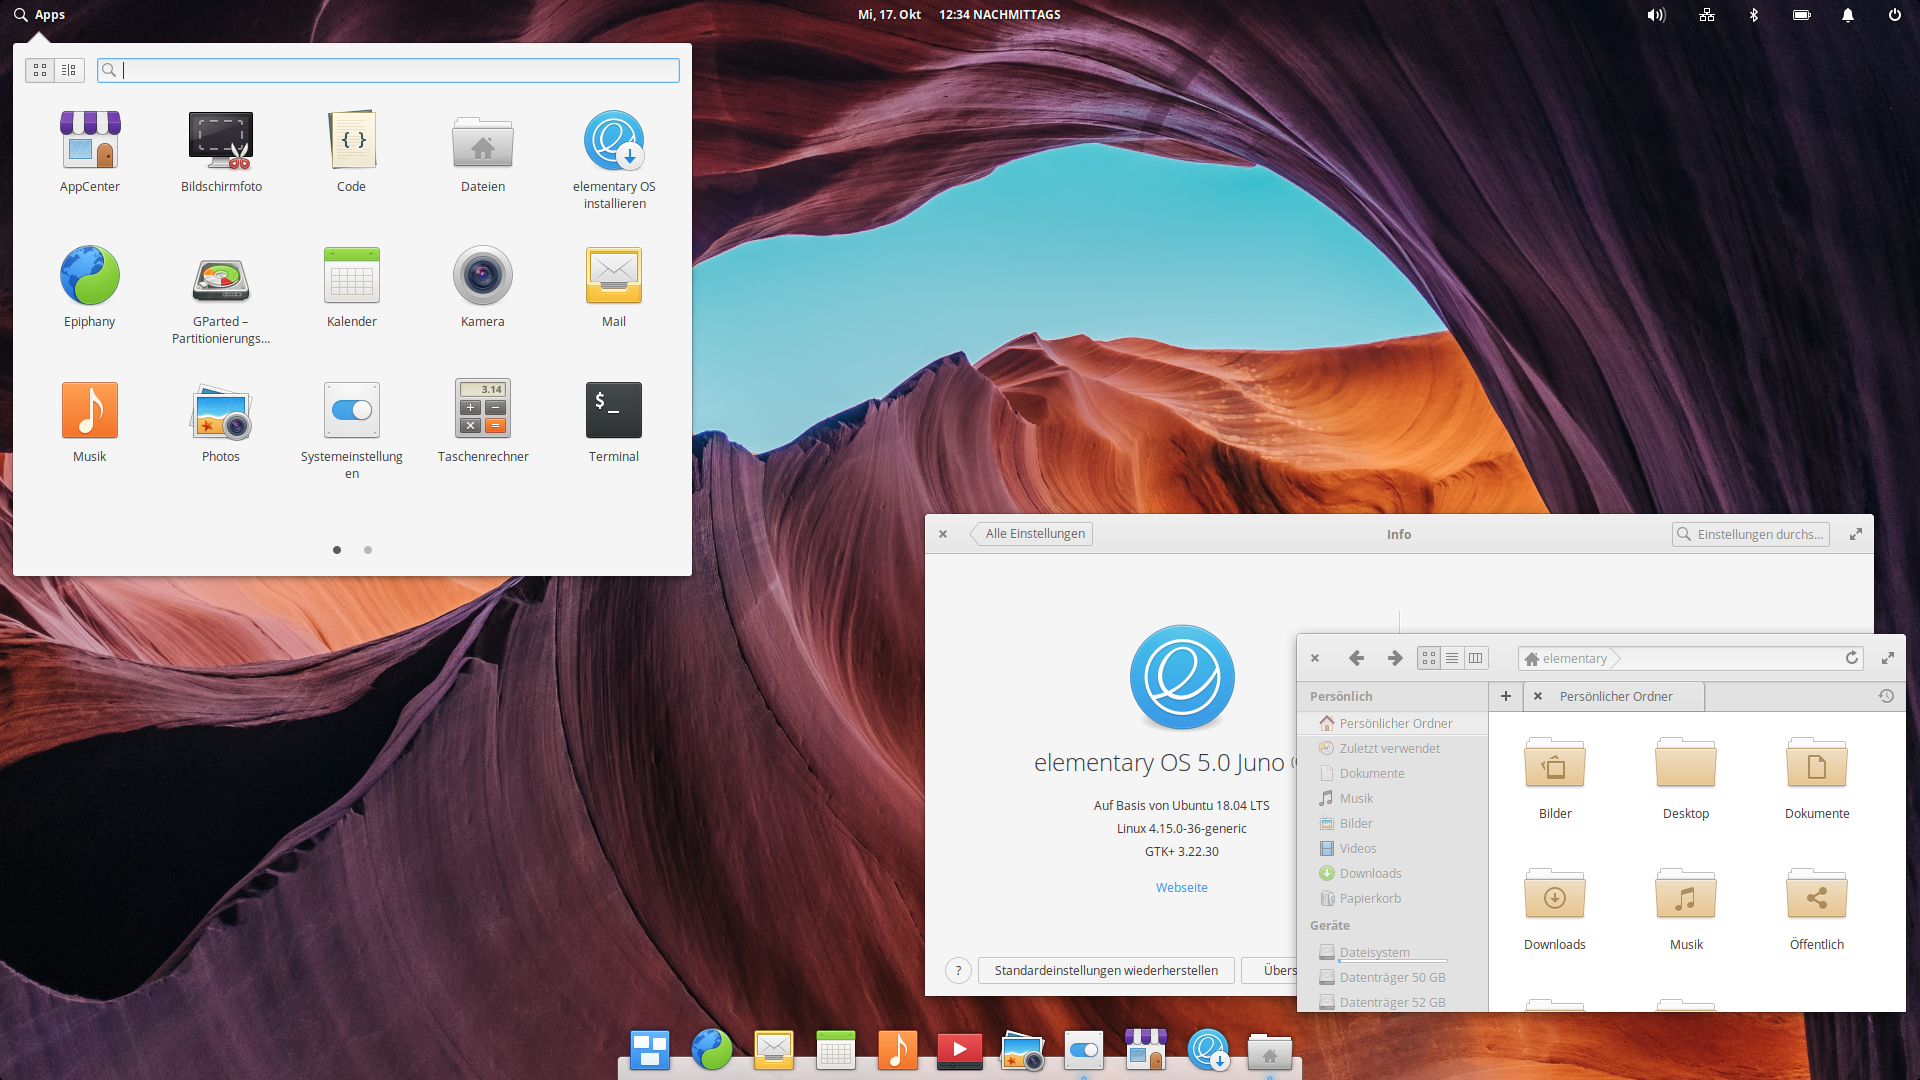 Elementary OS 5 0 Juno: Jewelry Linux for desktop users